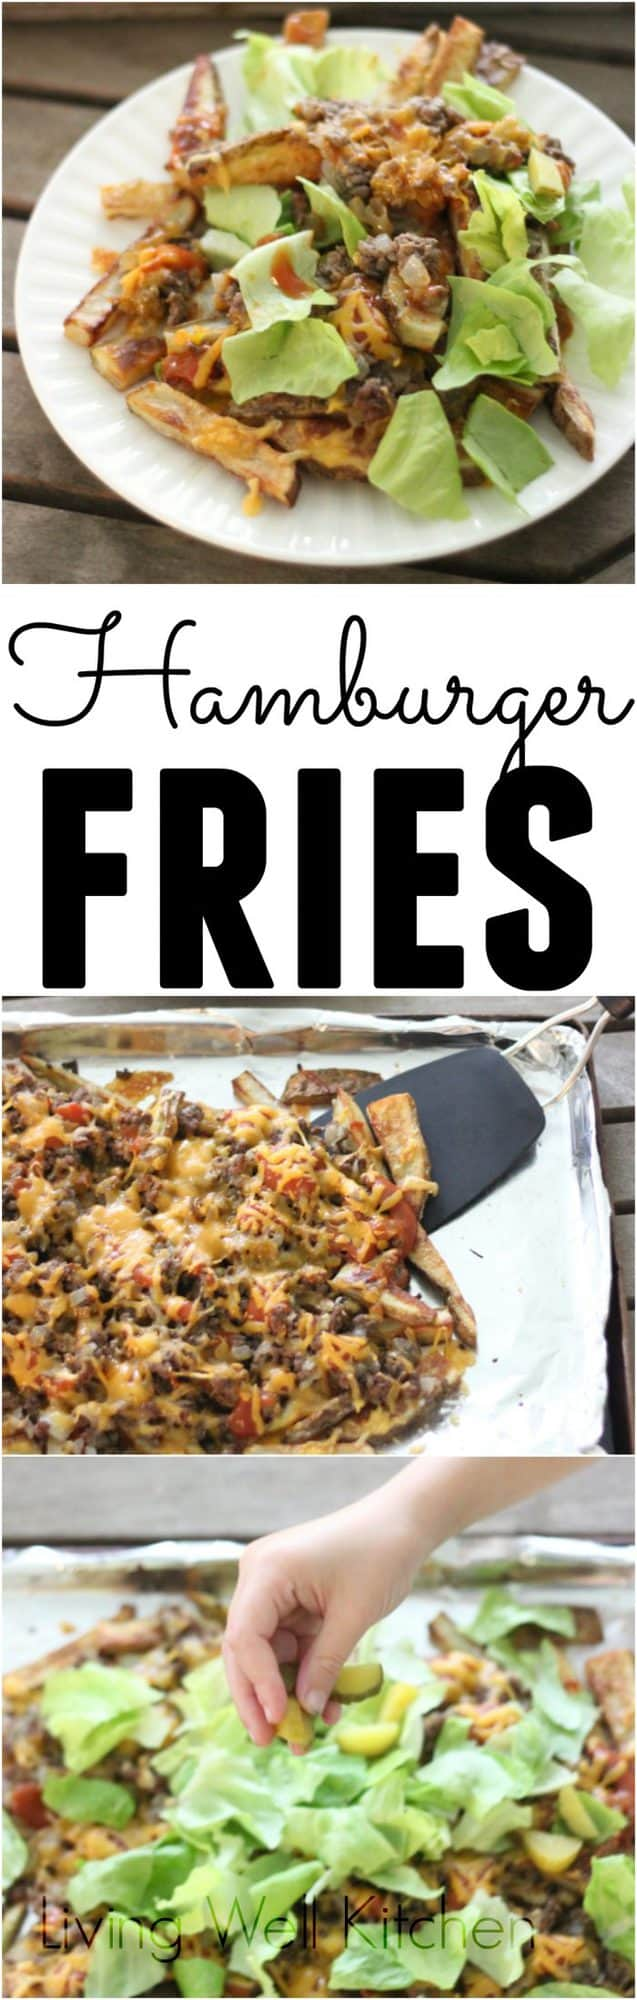 A fun take on a classic pair, these fries are covered in all your favorite burger toppings. Great to serve to a crowd. These Hamburger Fries from @memeinge are gluten free and can be dairy free